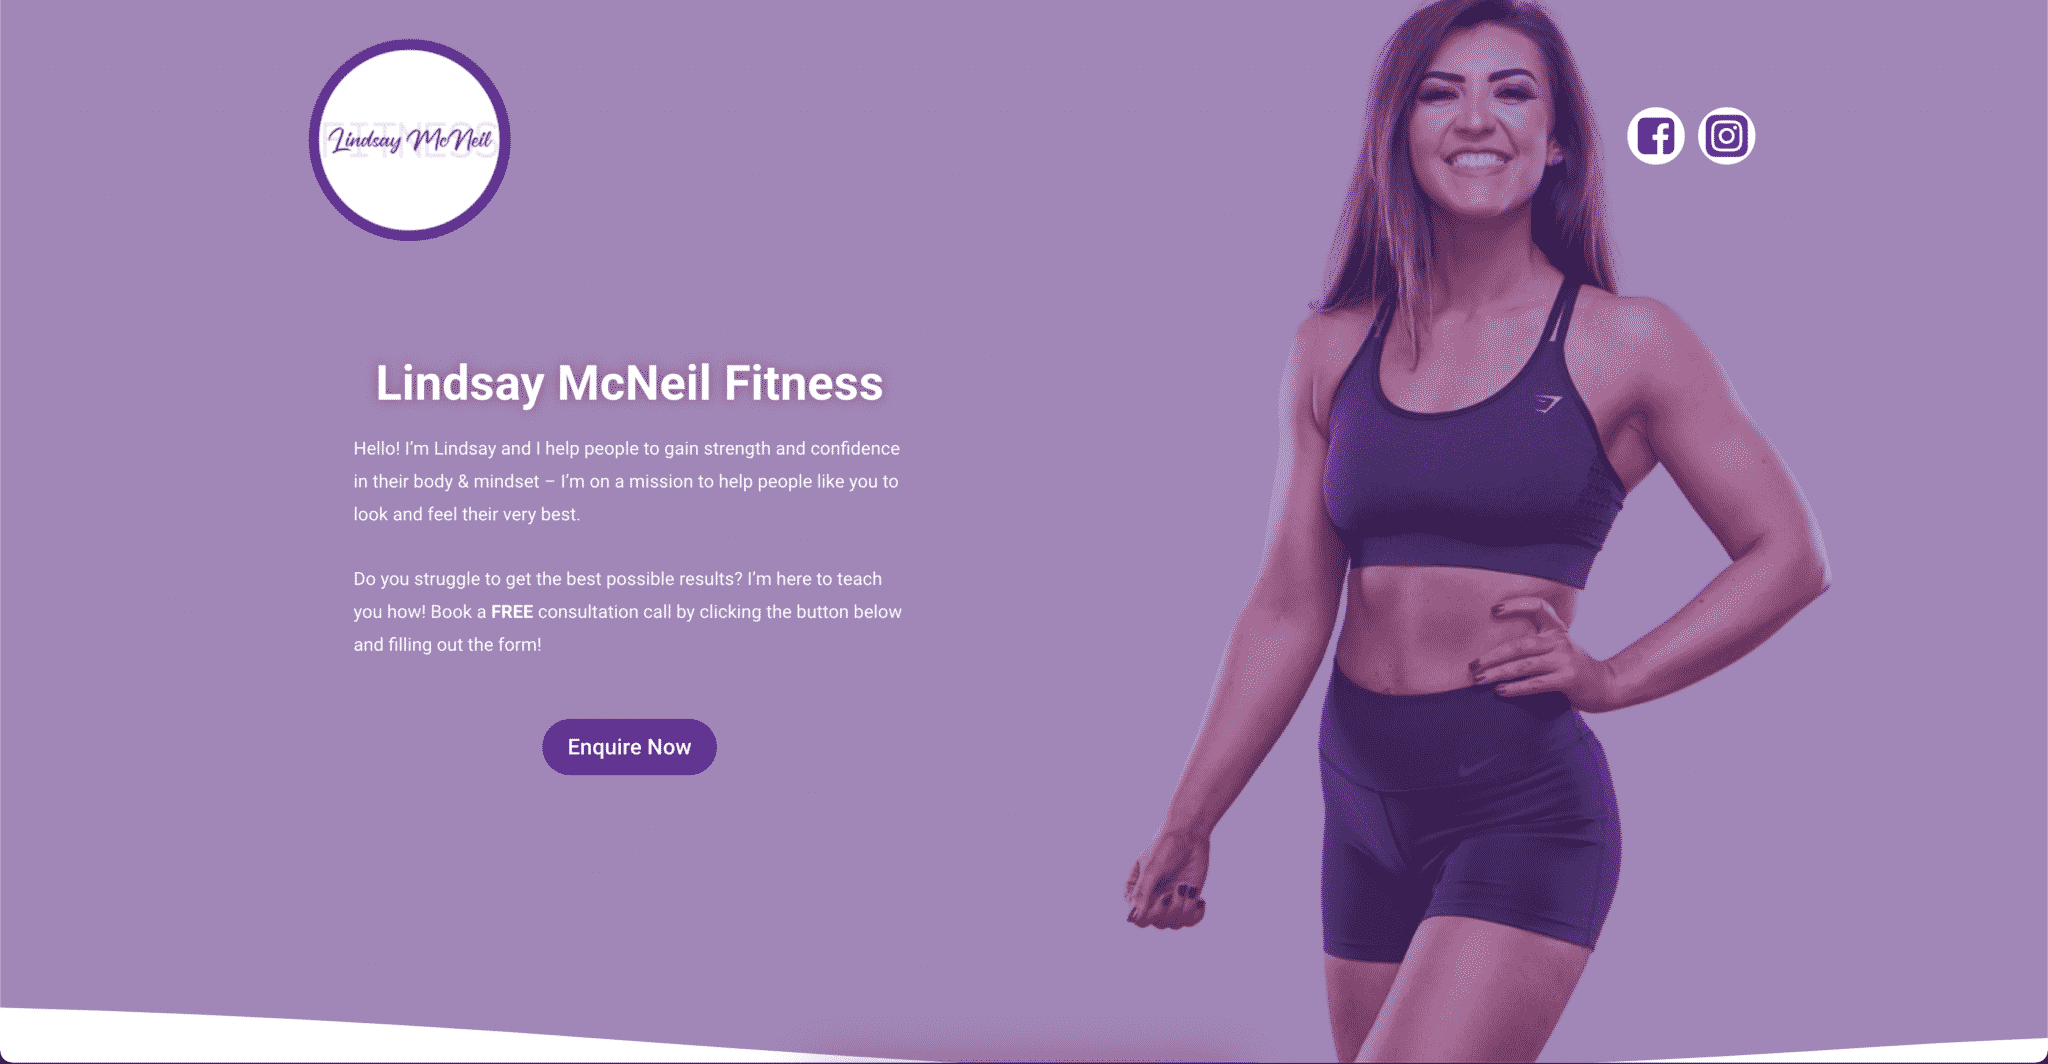 Lindsay McNeil's fitness website created by KY Designs in Fife